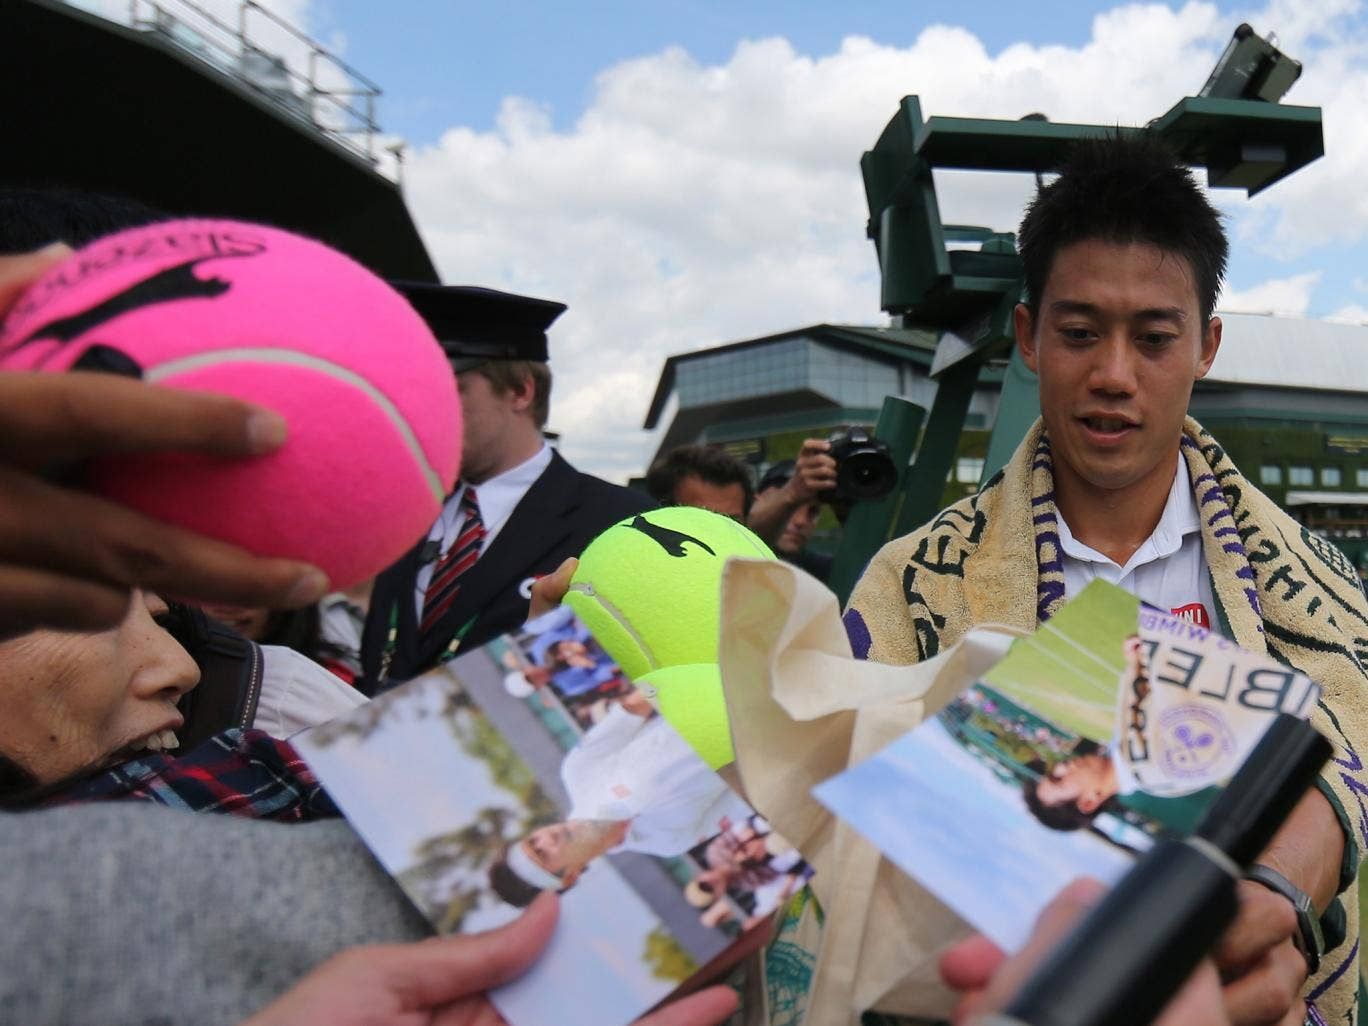 Japan's Kei Nishikori signs autographs after winning his men's singles third round match against Italy's Simon Bolelli